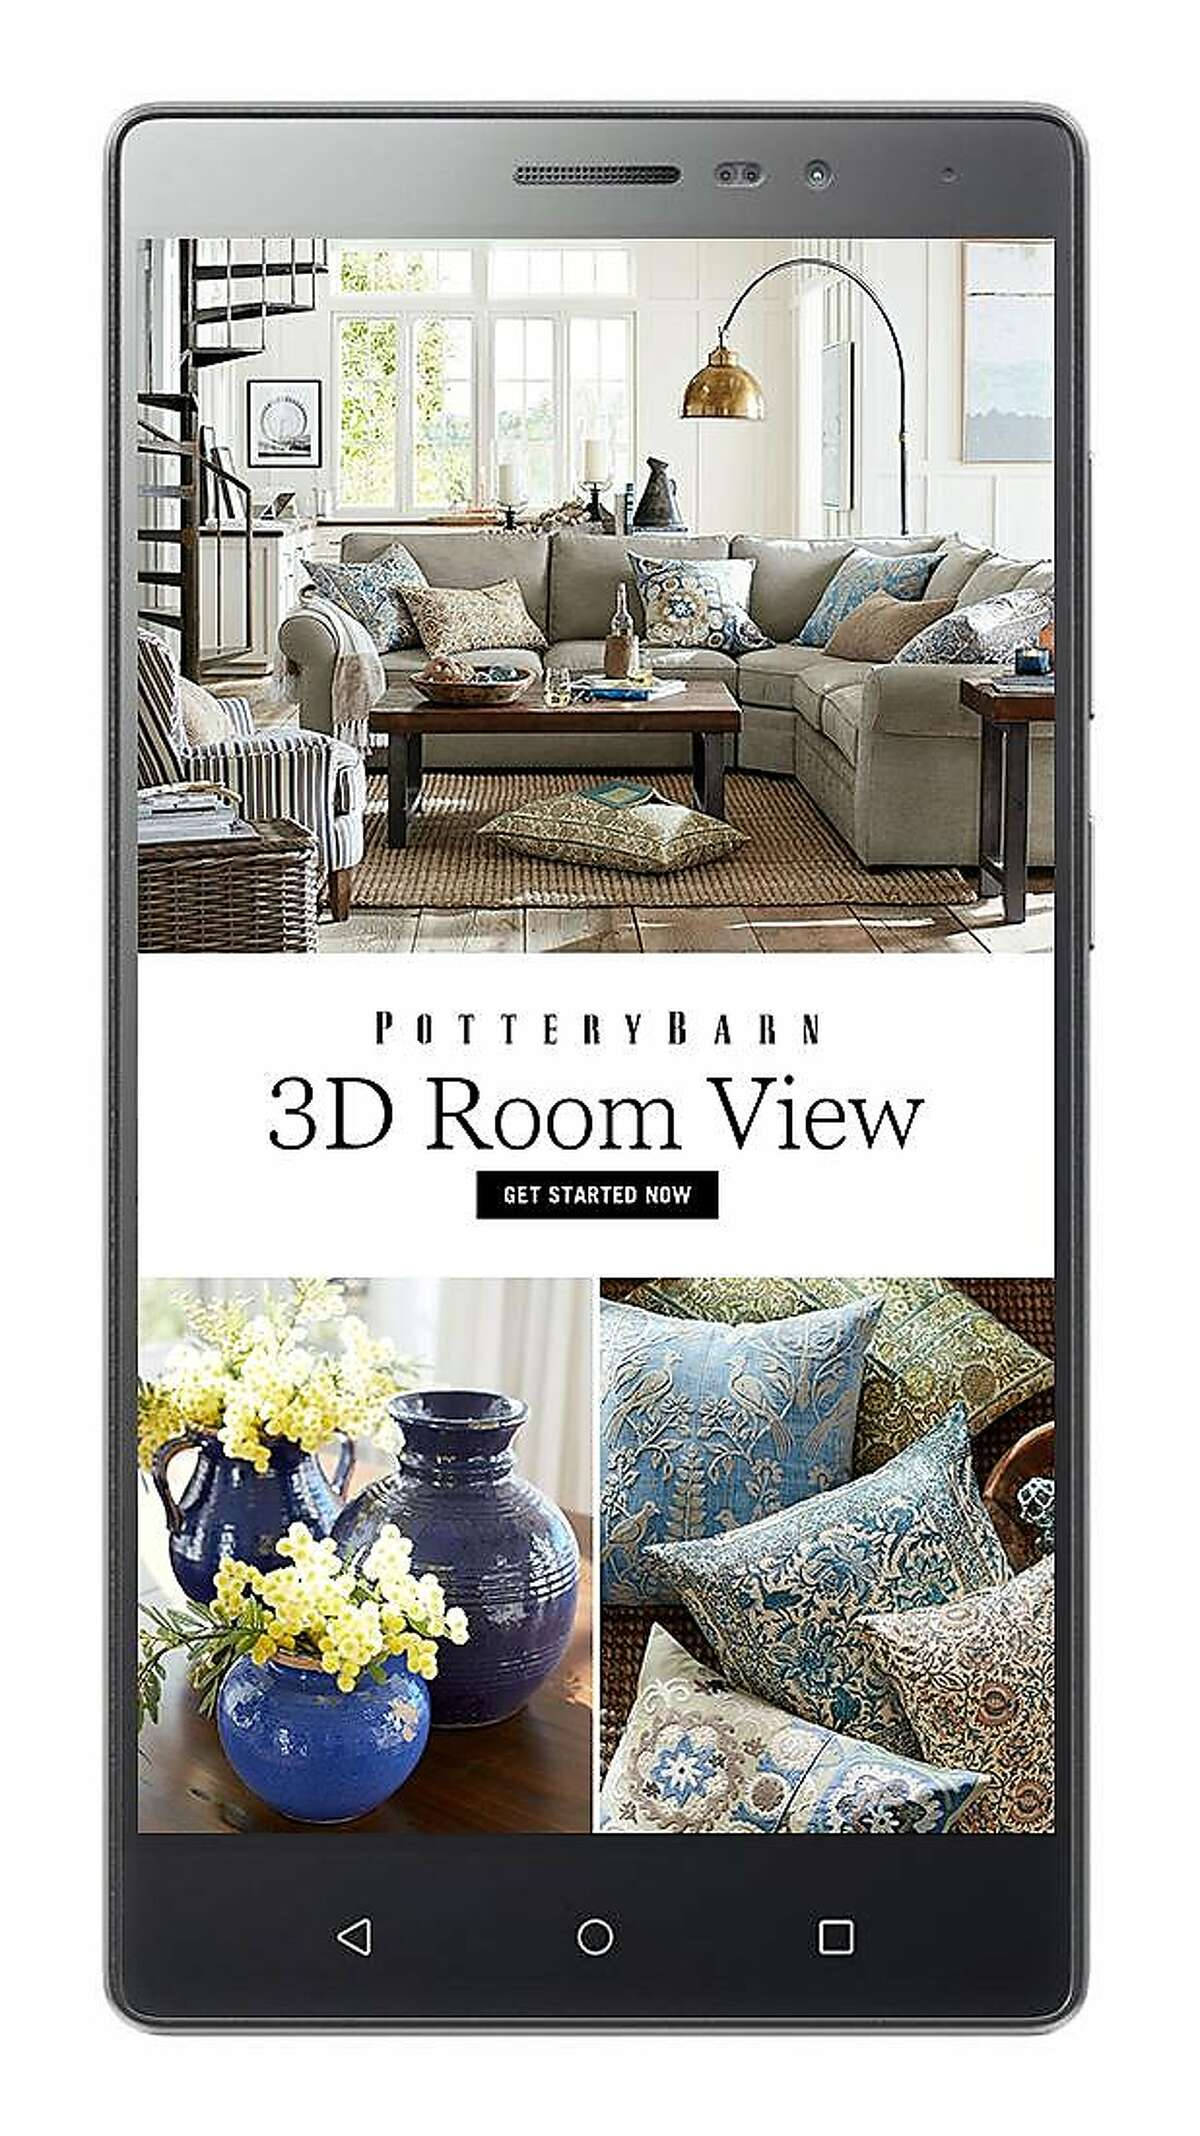 360 Room View of Pottery Barn's online catalog.